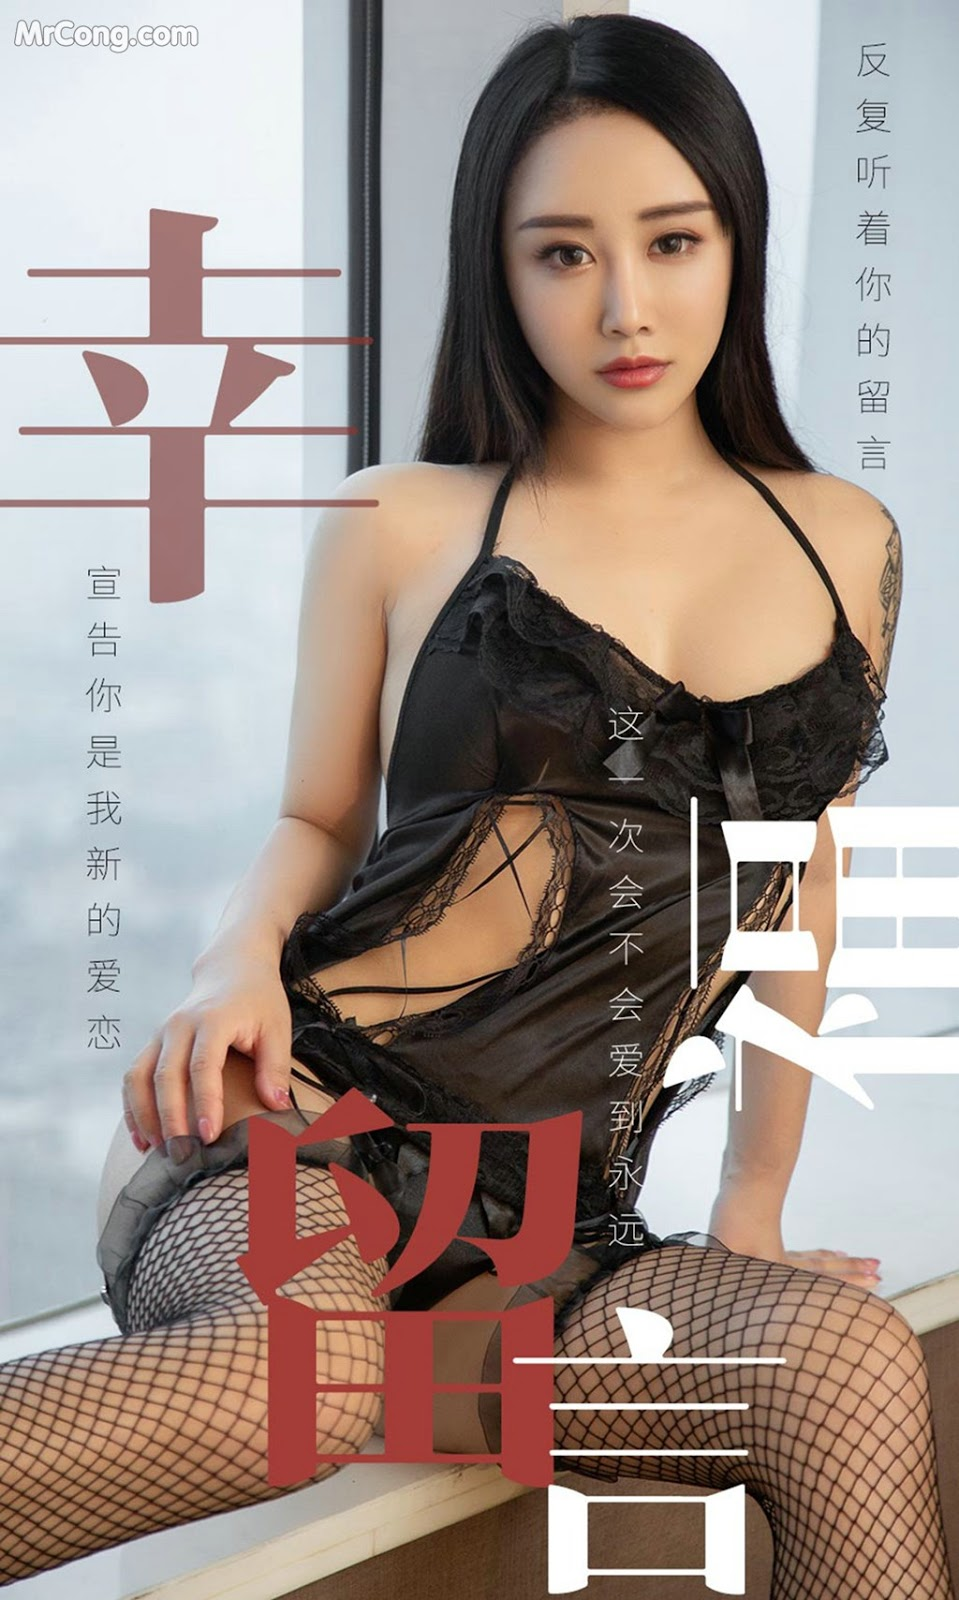 UGIRLS - Ai You Wu App No.1499: 漫 妮 (35 pictures)